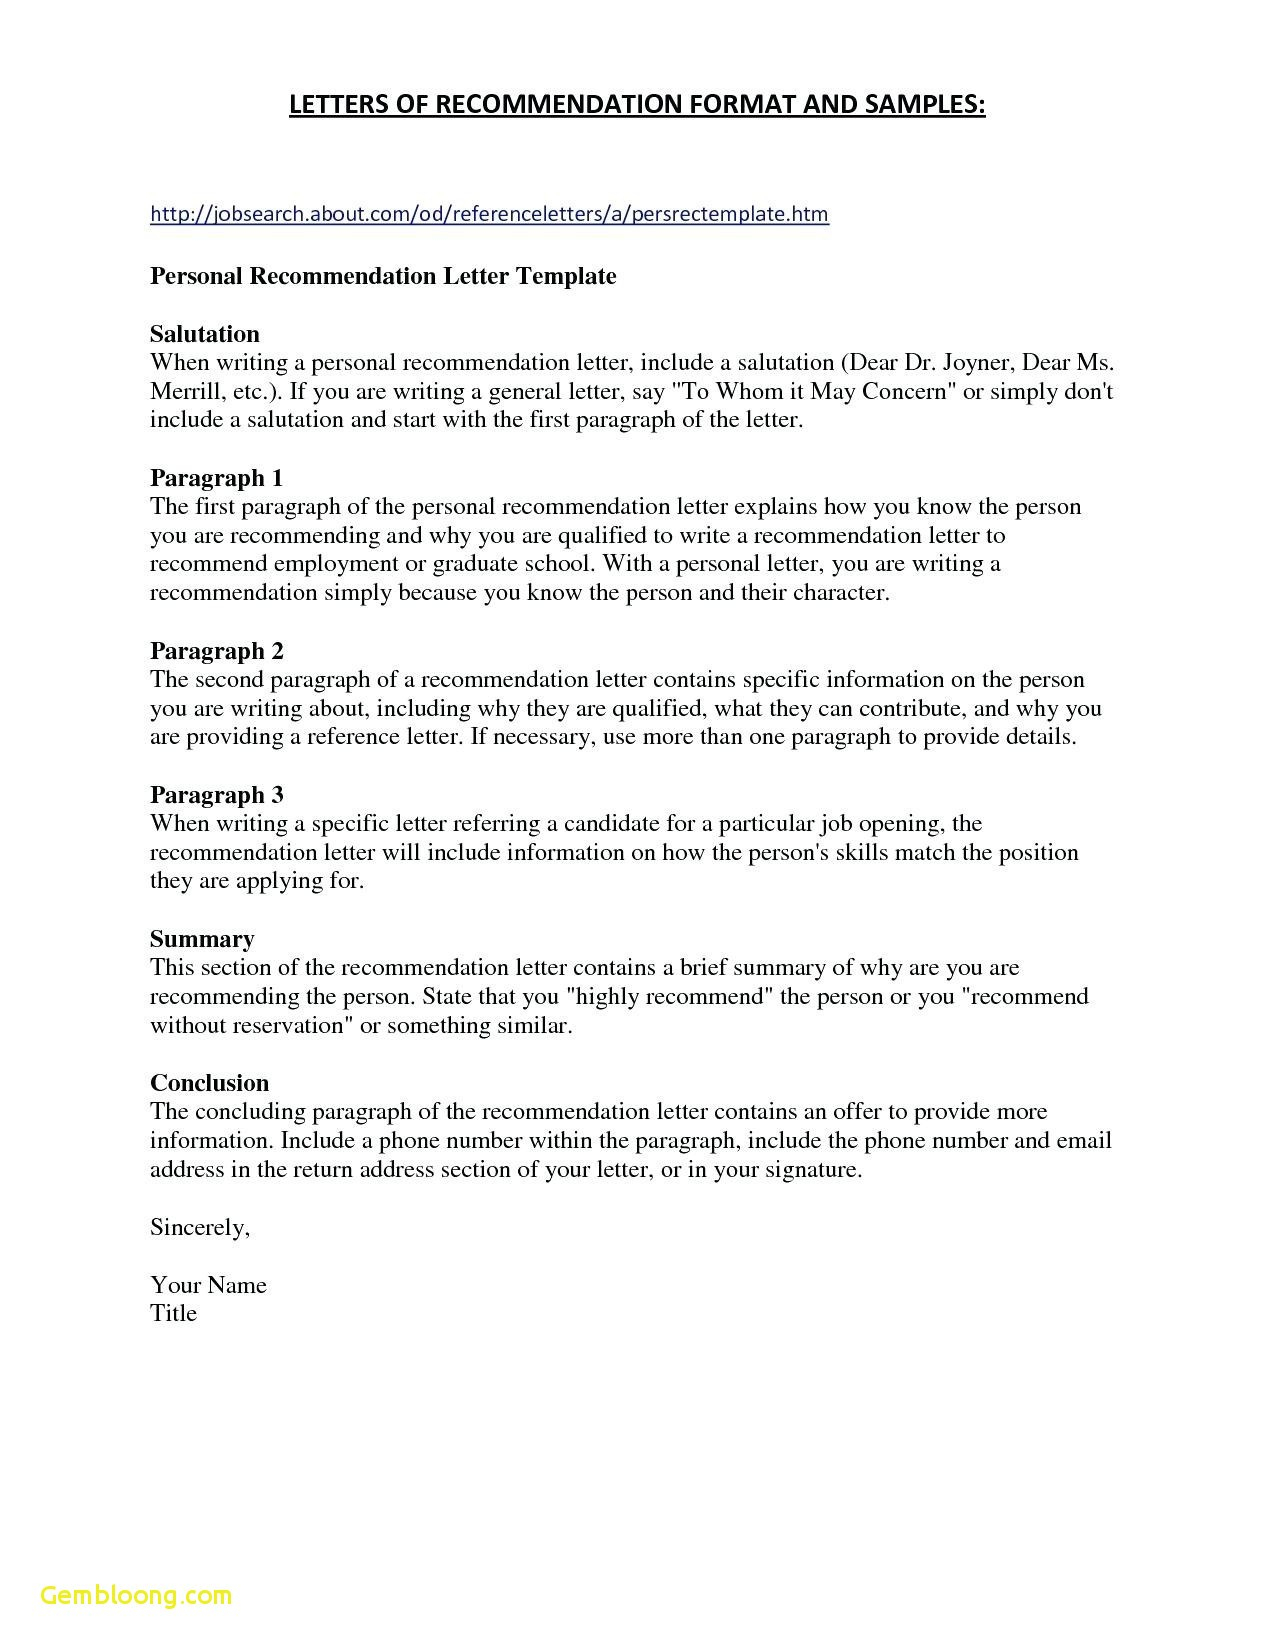 Resume for Letter Of Recommendation Template - Reference Letter format Personal Fresh References for Resume